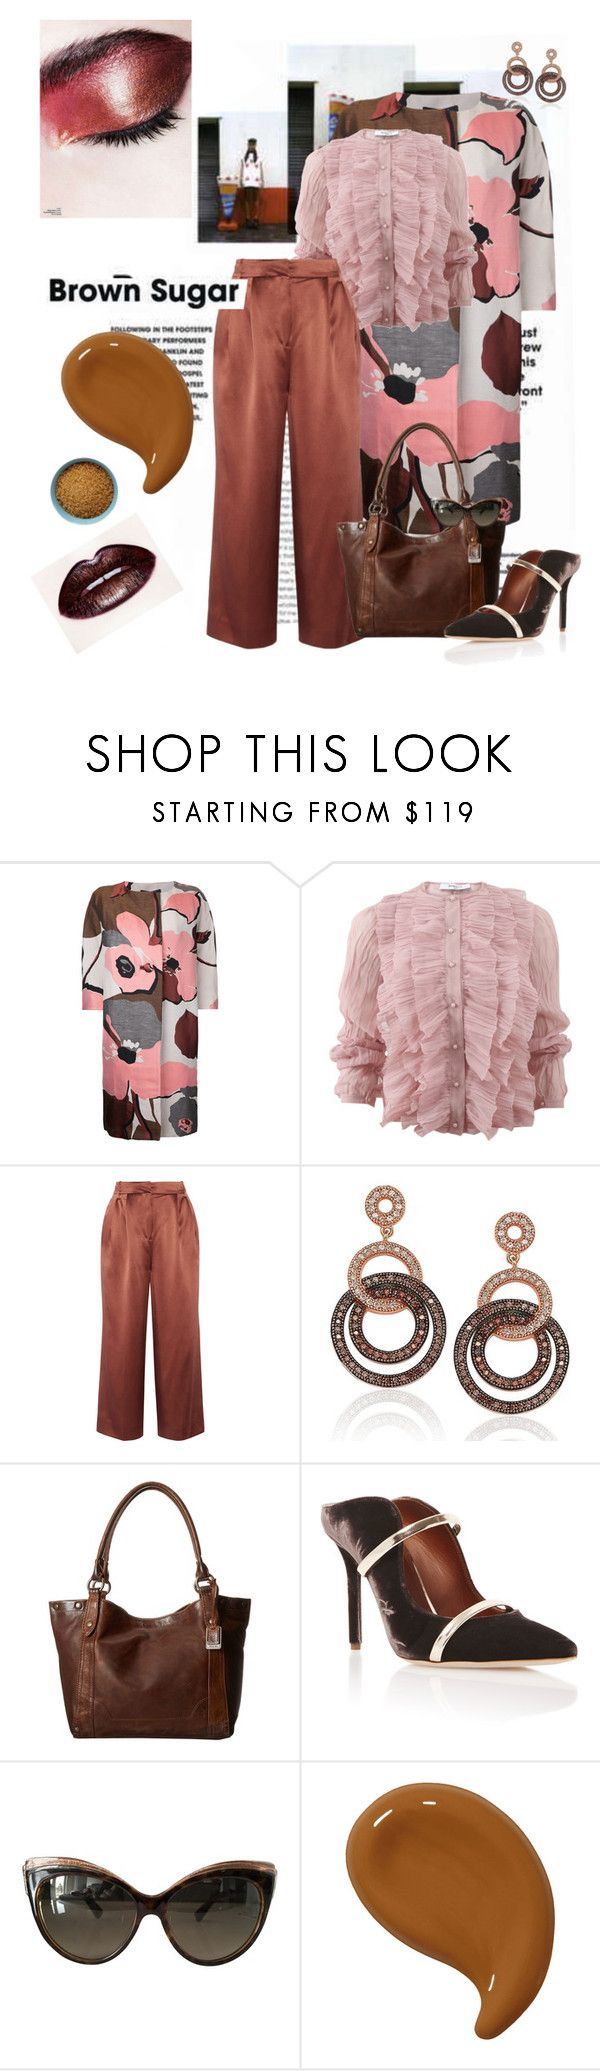 """""""Sugar Rush"""" by scope-stilettos ❤ liked on Polyvore featuring Paule Ka, Givenchy, TIBI, Suzy Levian, Frye, Malone Souliers and Christian Dior"""